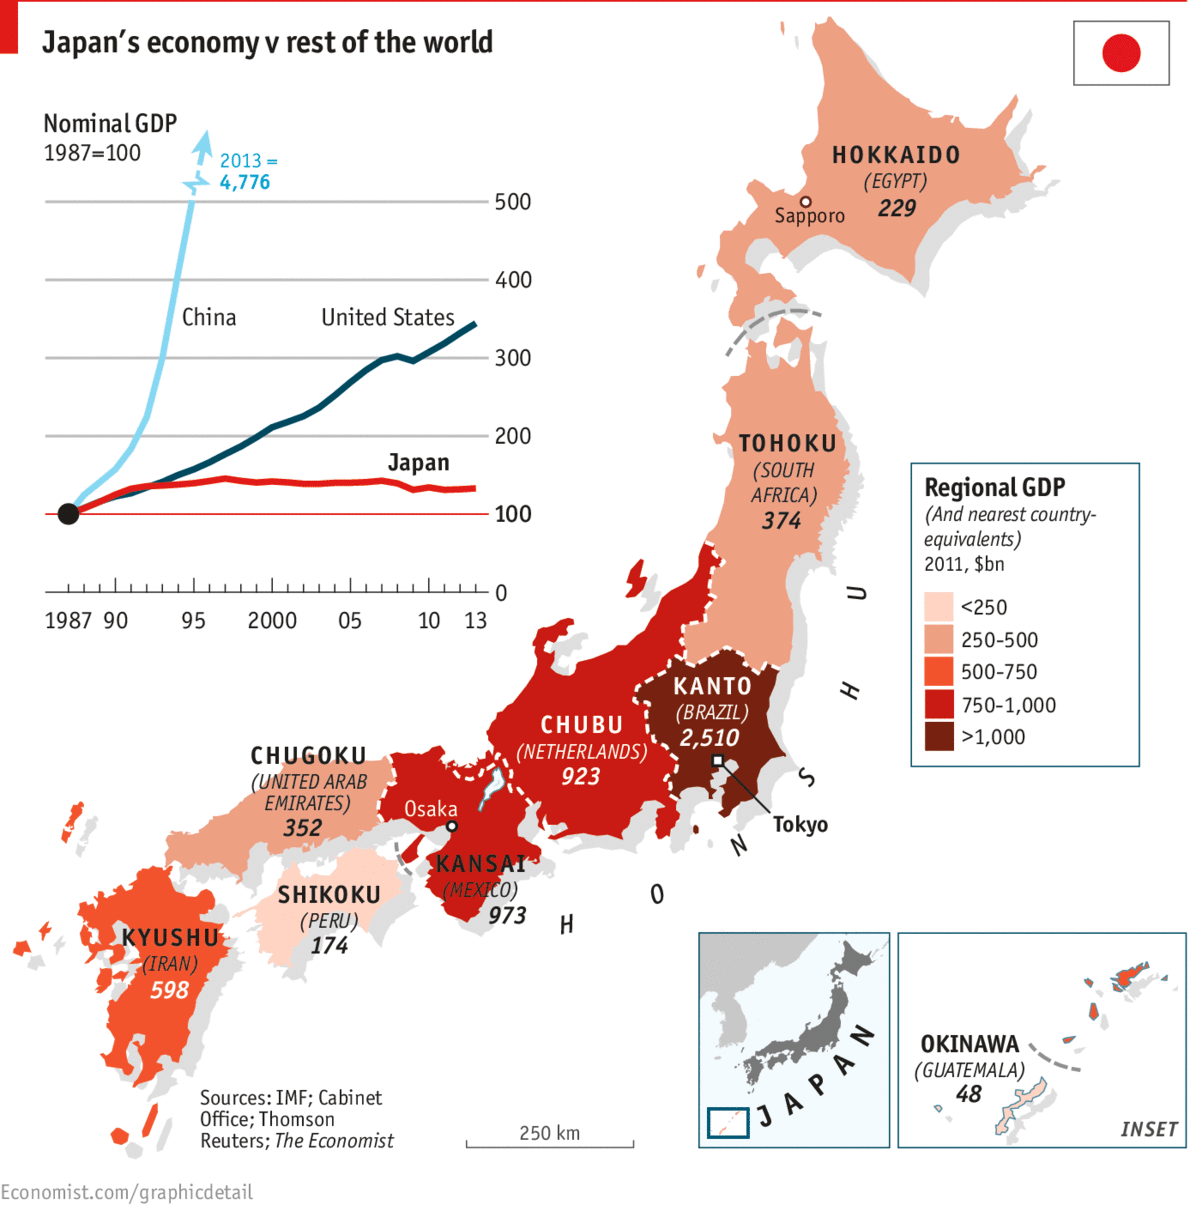 Japan GDP Growth Compared to China and the U.S.